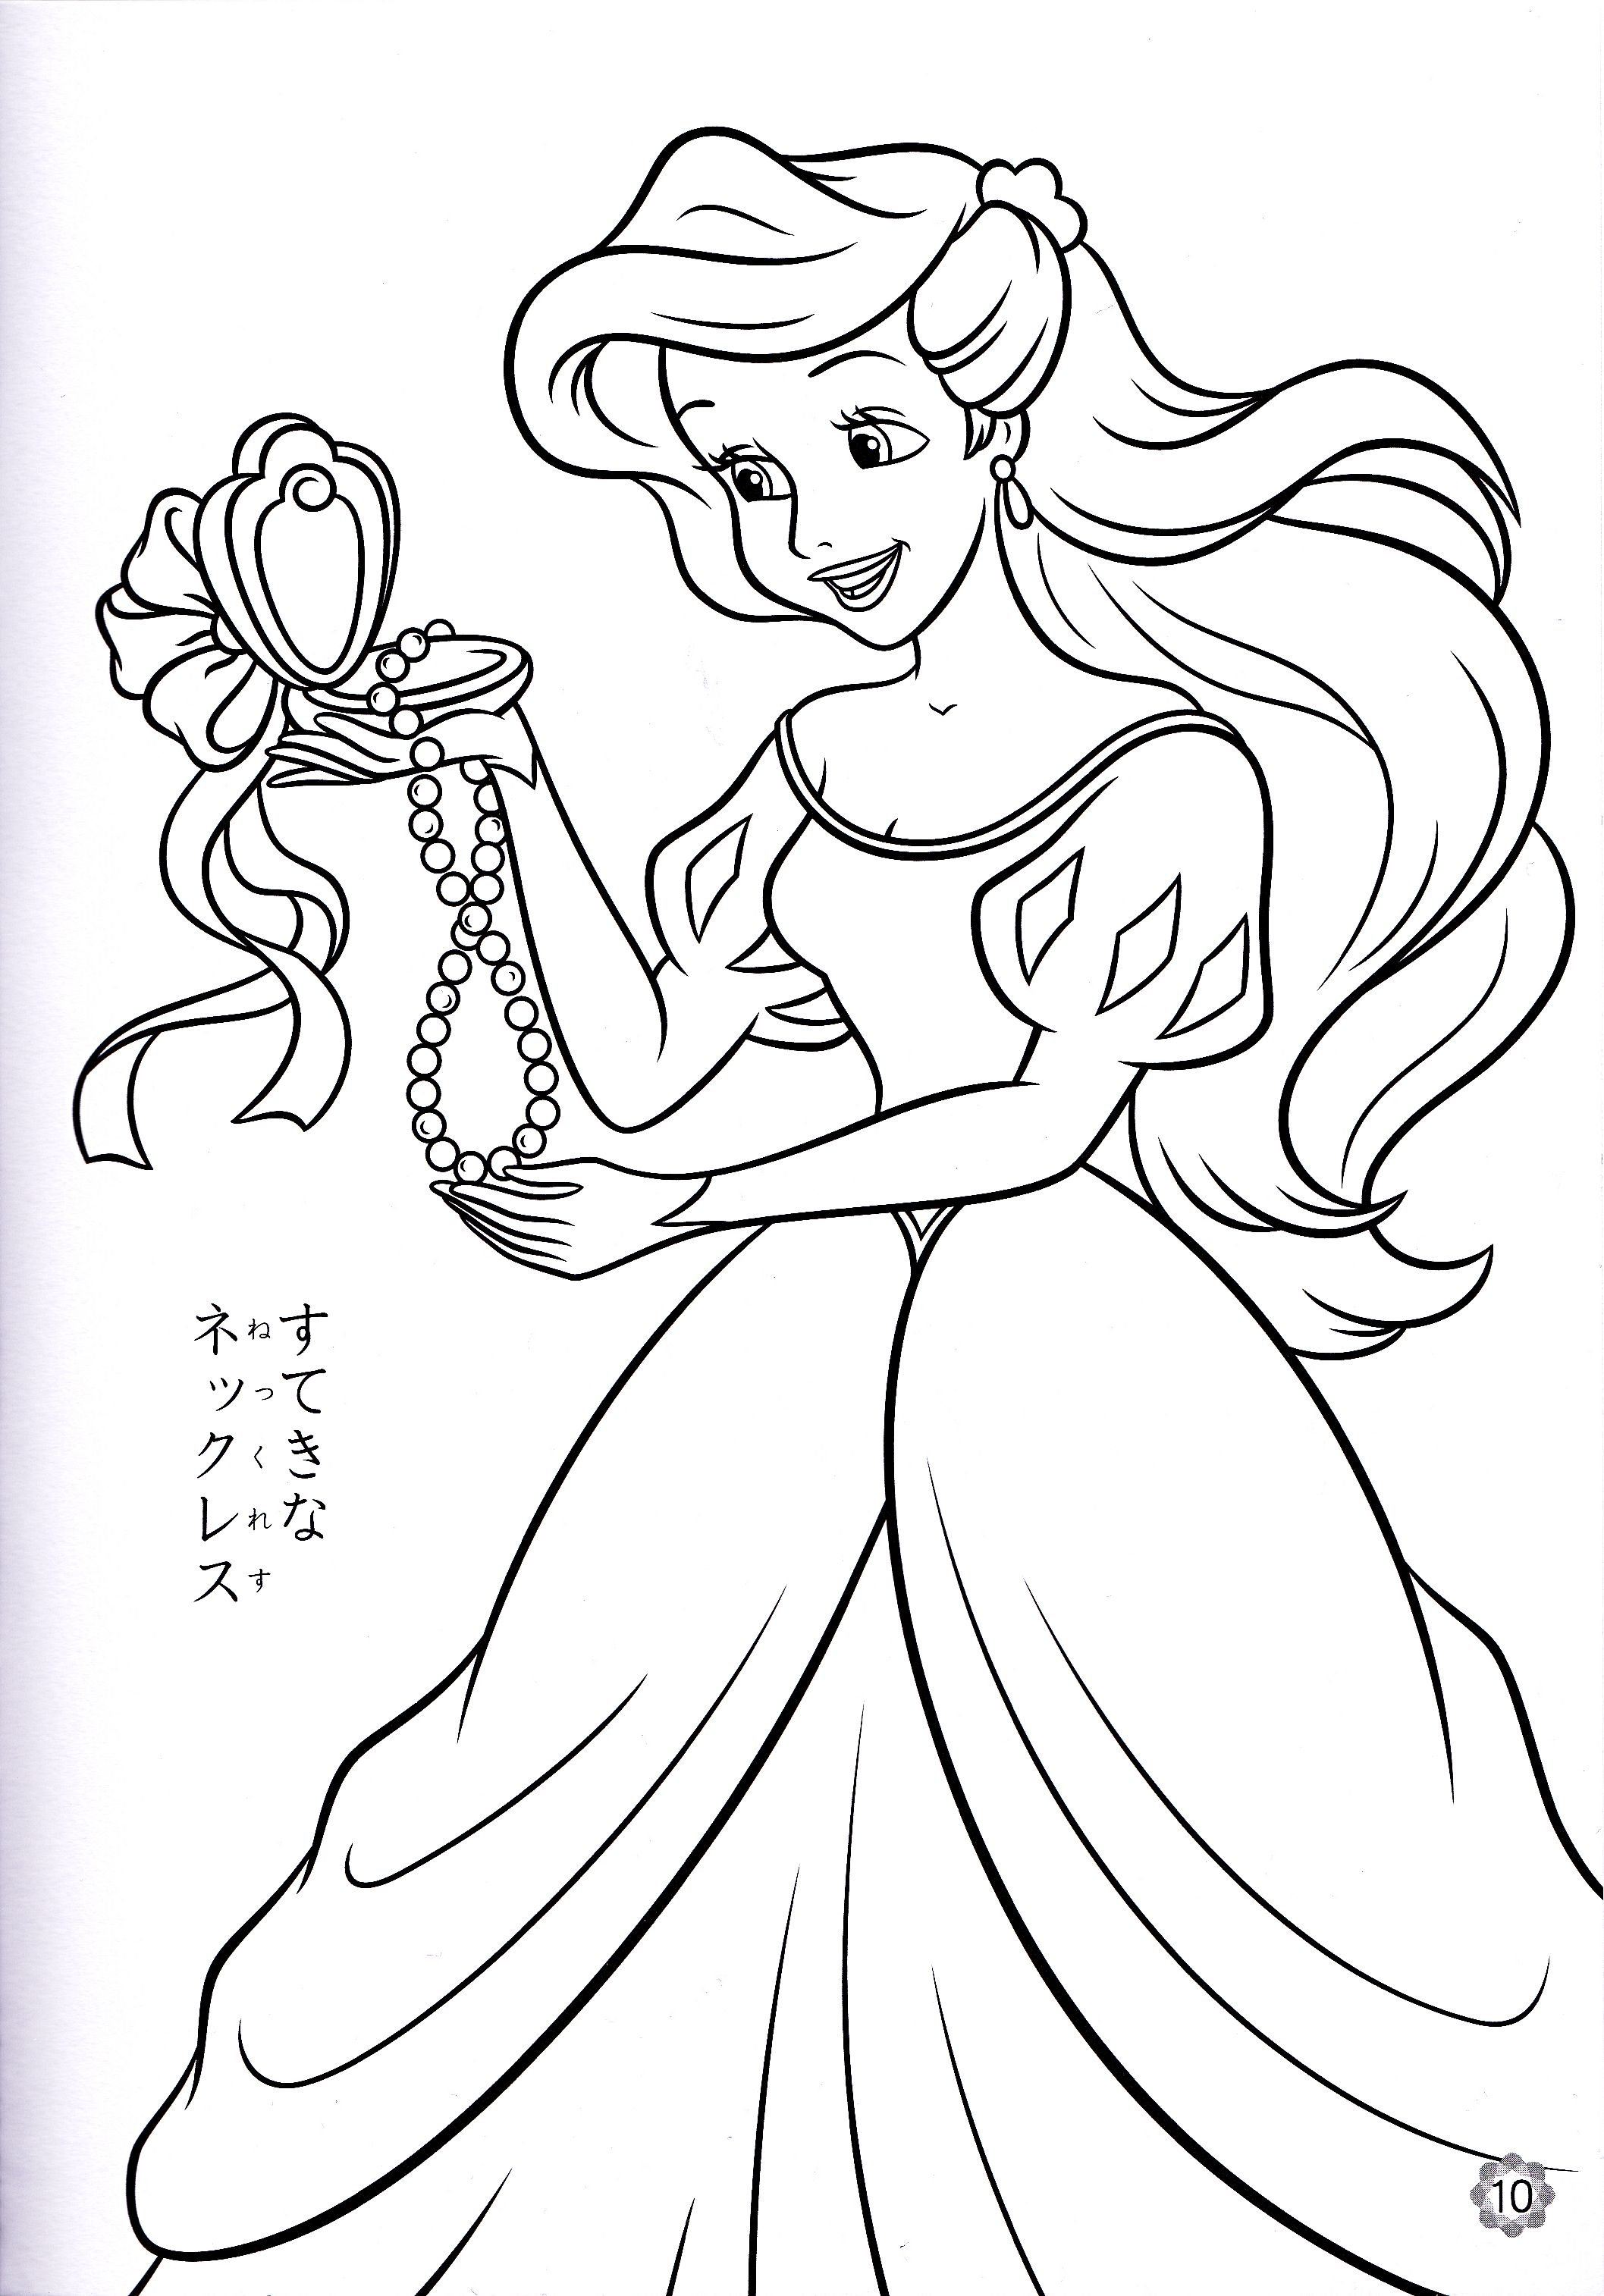 Pr princess coloring sheet - Princess Ariel Coloring Pages To Print Awesome Coloring Pages